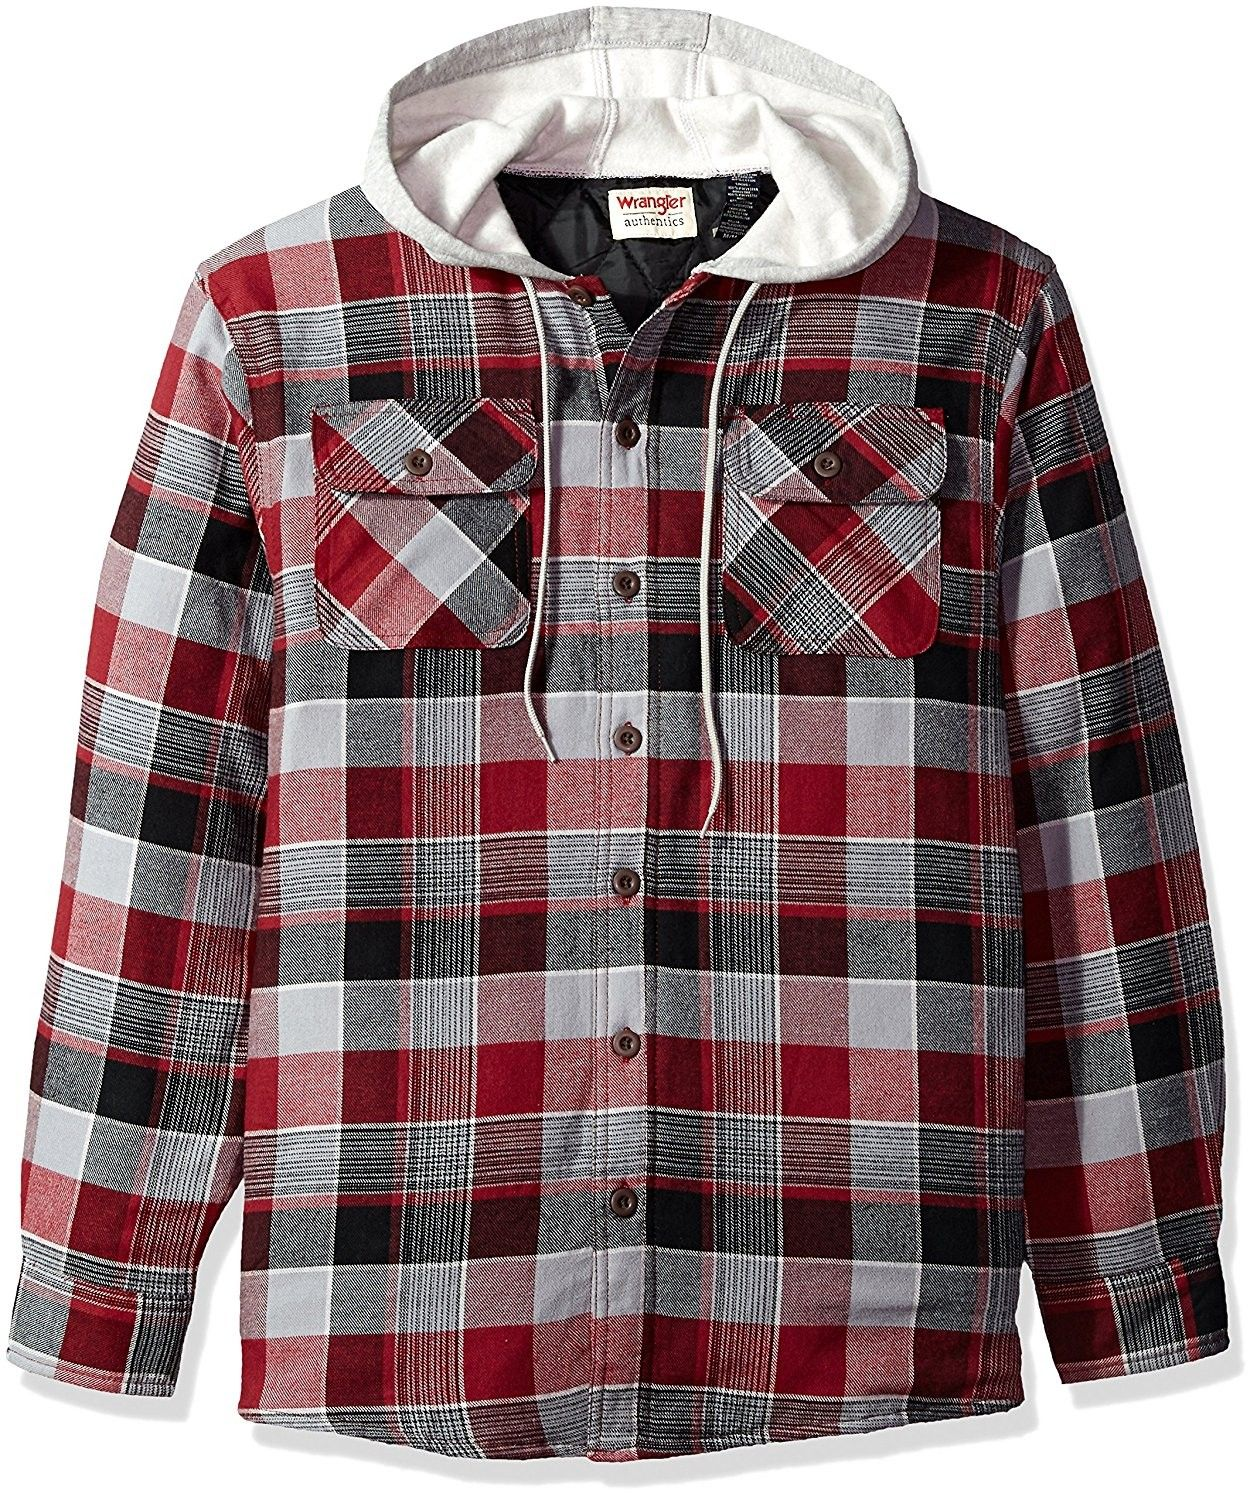 Men S Long Sleeve Quilted Lined Flannel Shirt Jacket With Hood Biking Red With Gray Hood Cw184kuc7y8 Lined Flannel Shirt Flannel Jacket Mens Flannel Shirt [ 1500 x 1257 Pixel ]